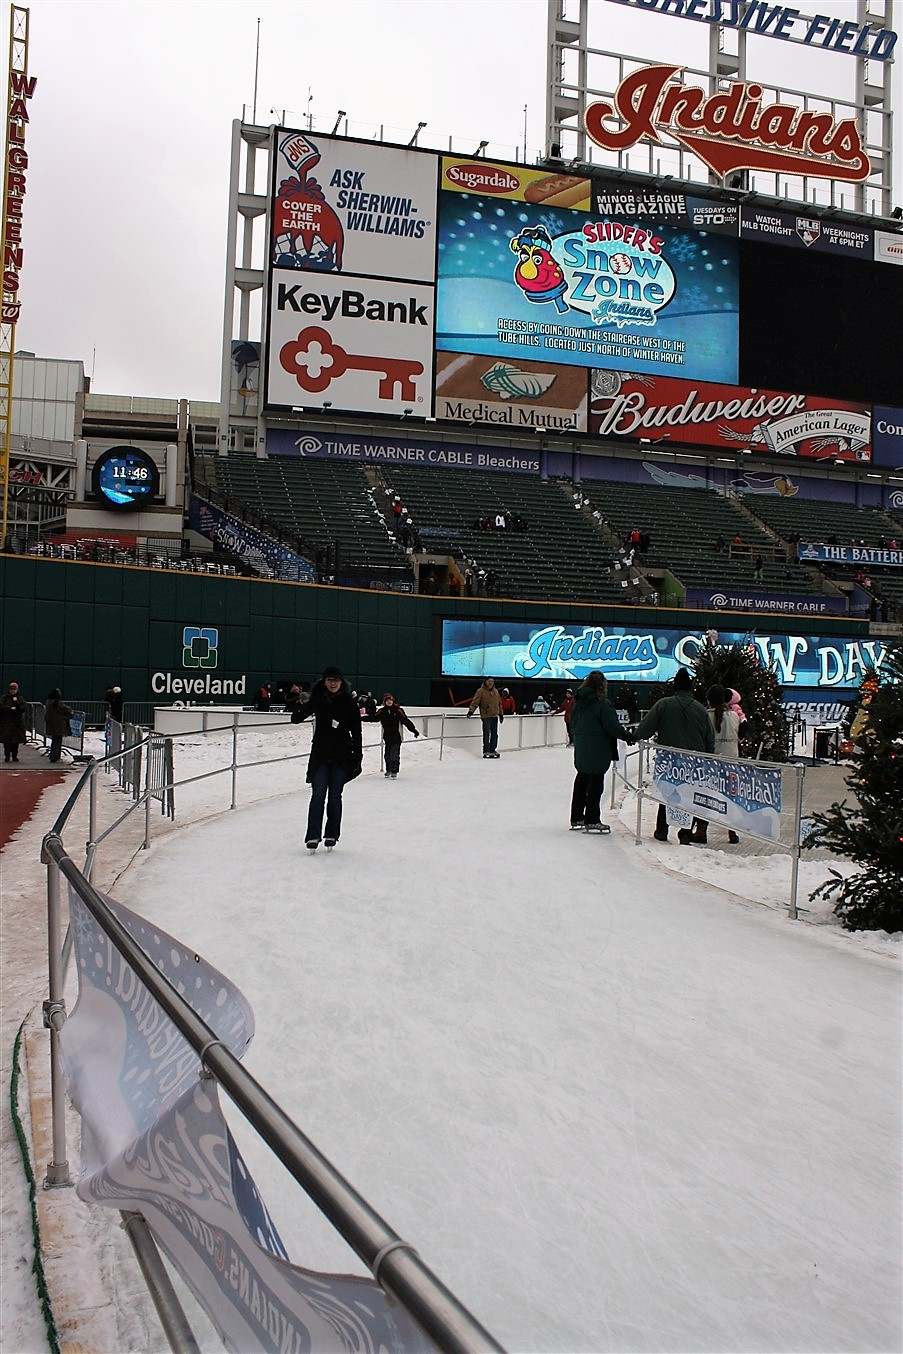 2010 12 27 Cleveland Jacobs Field Snow Days 5.jpg